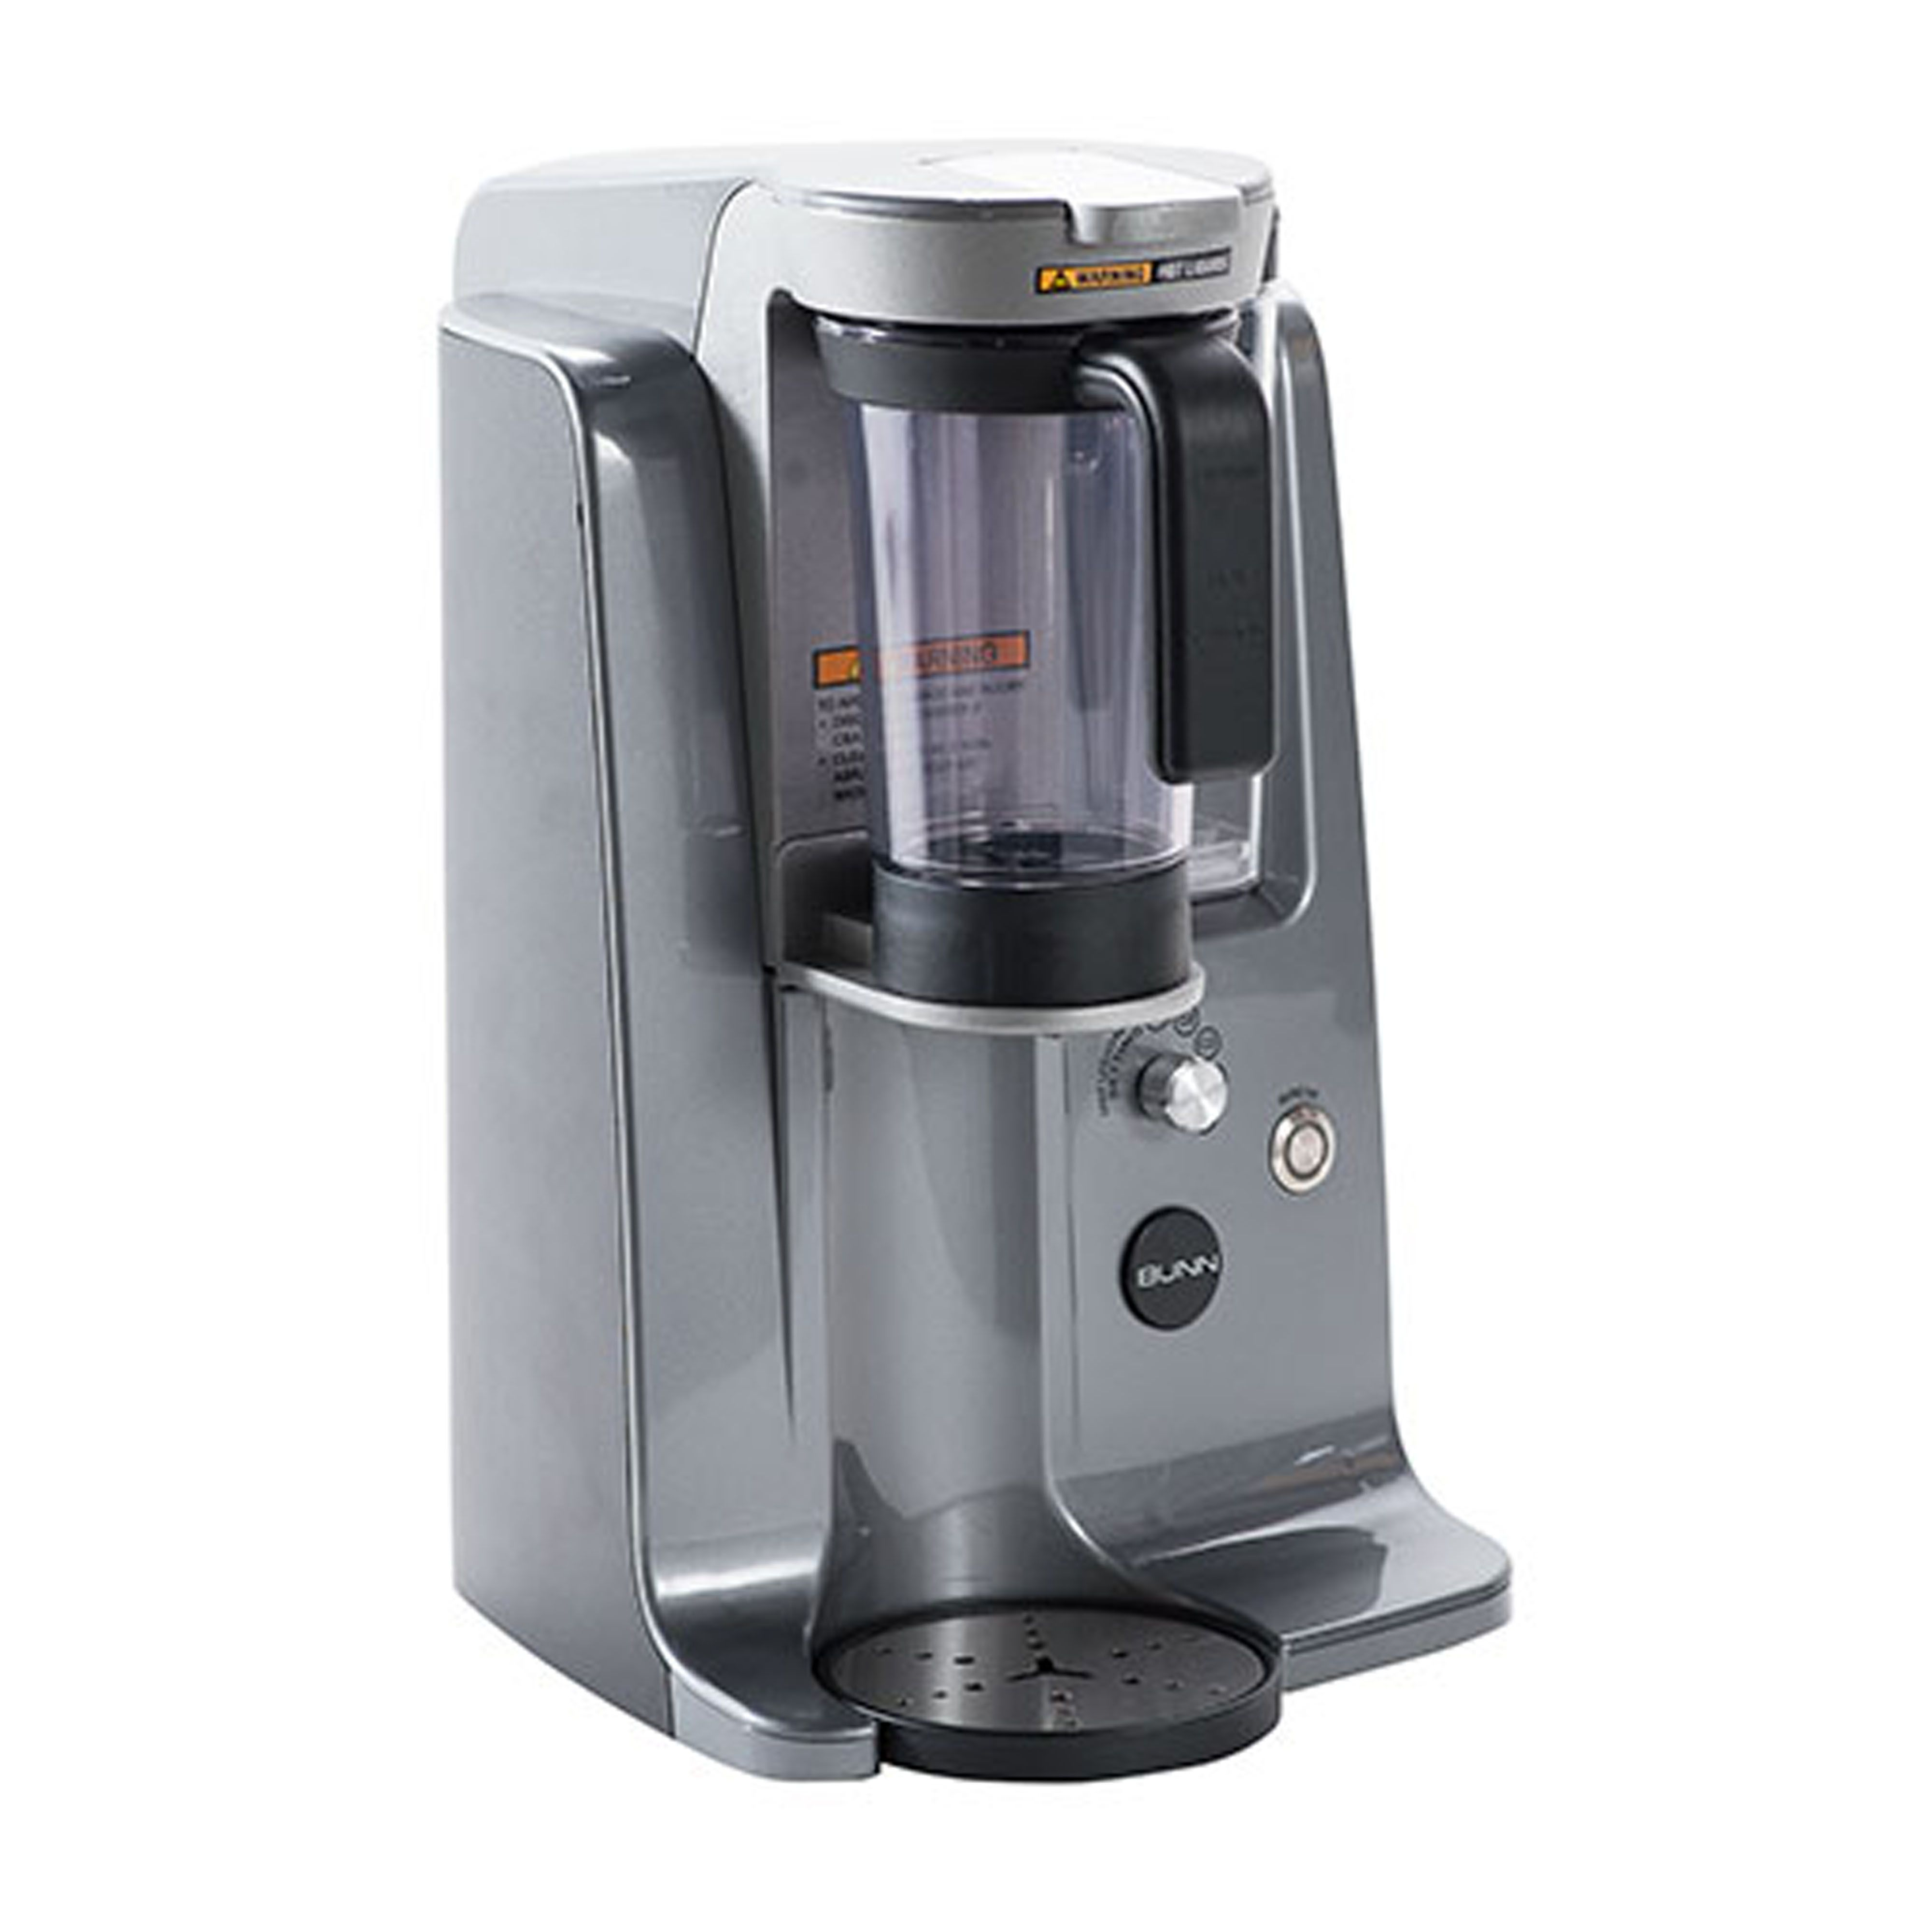 Bunn Trifecta MC5 Coffeemaker Review, Price and Features